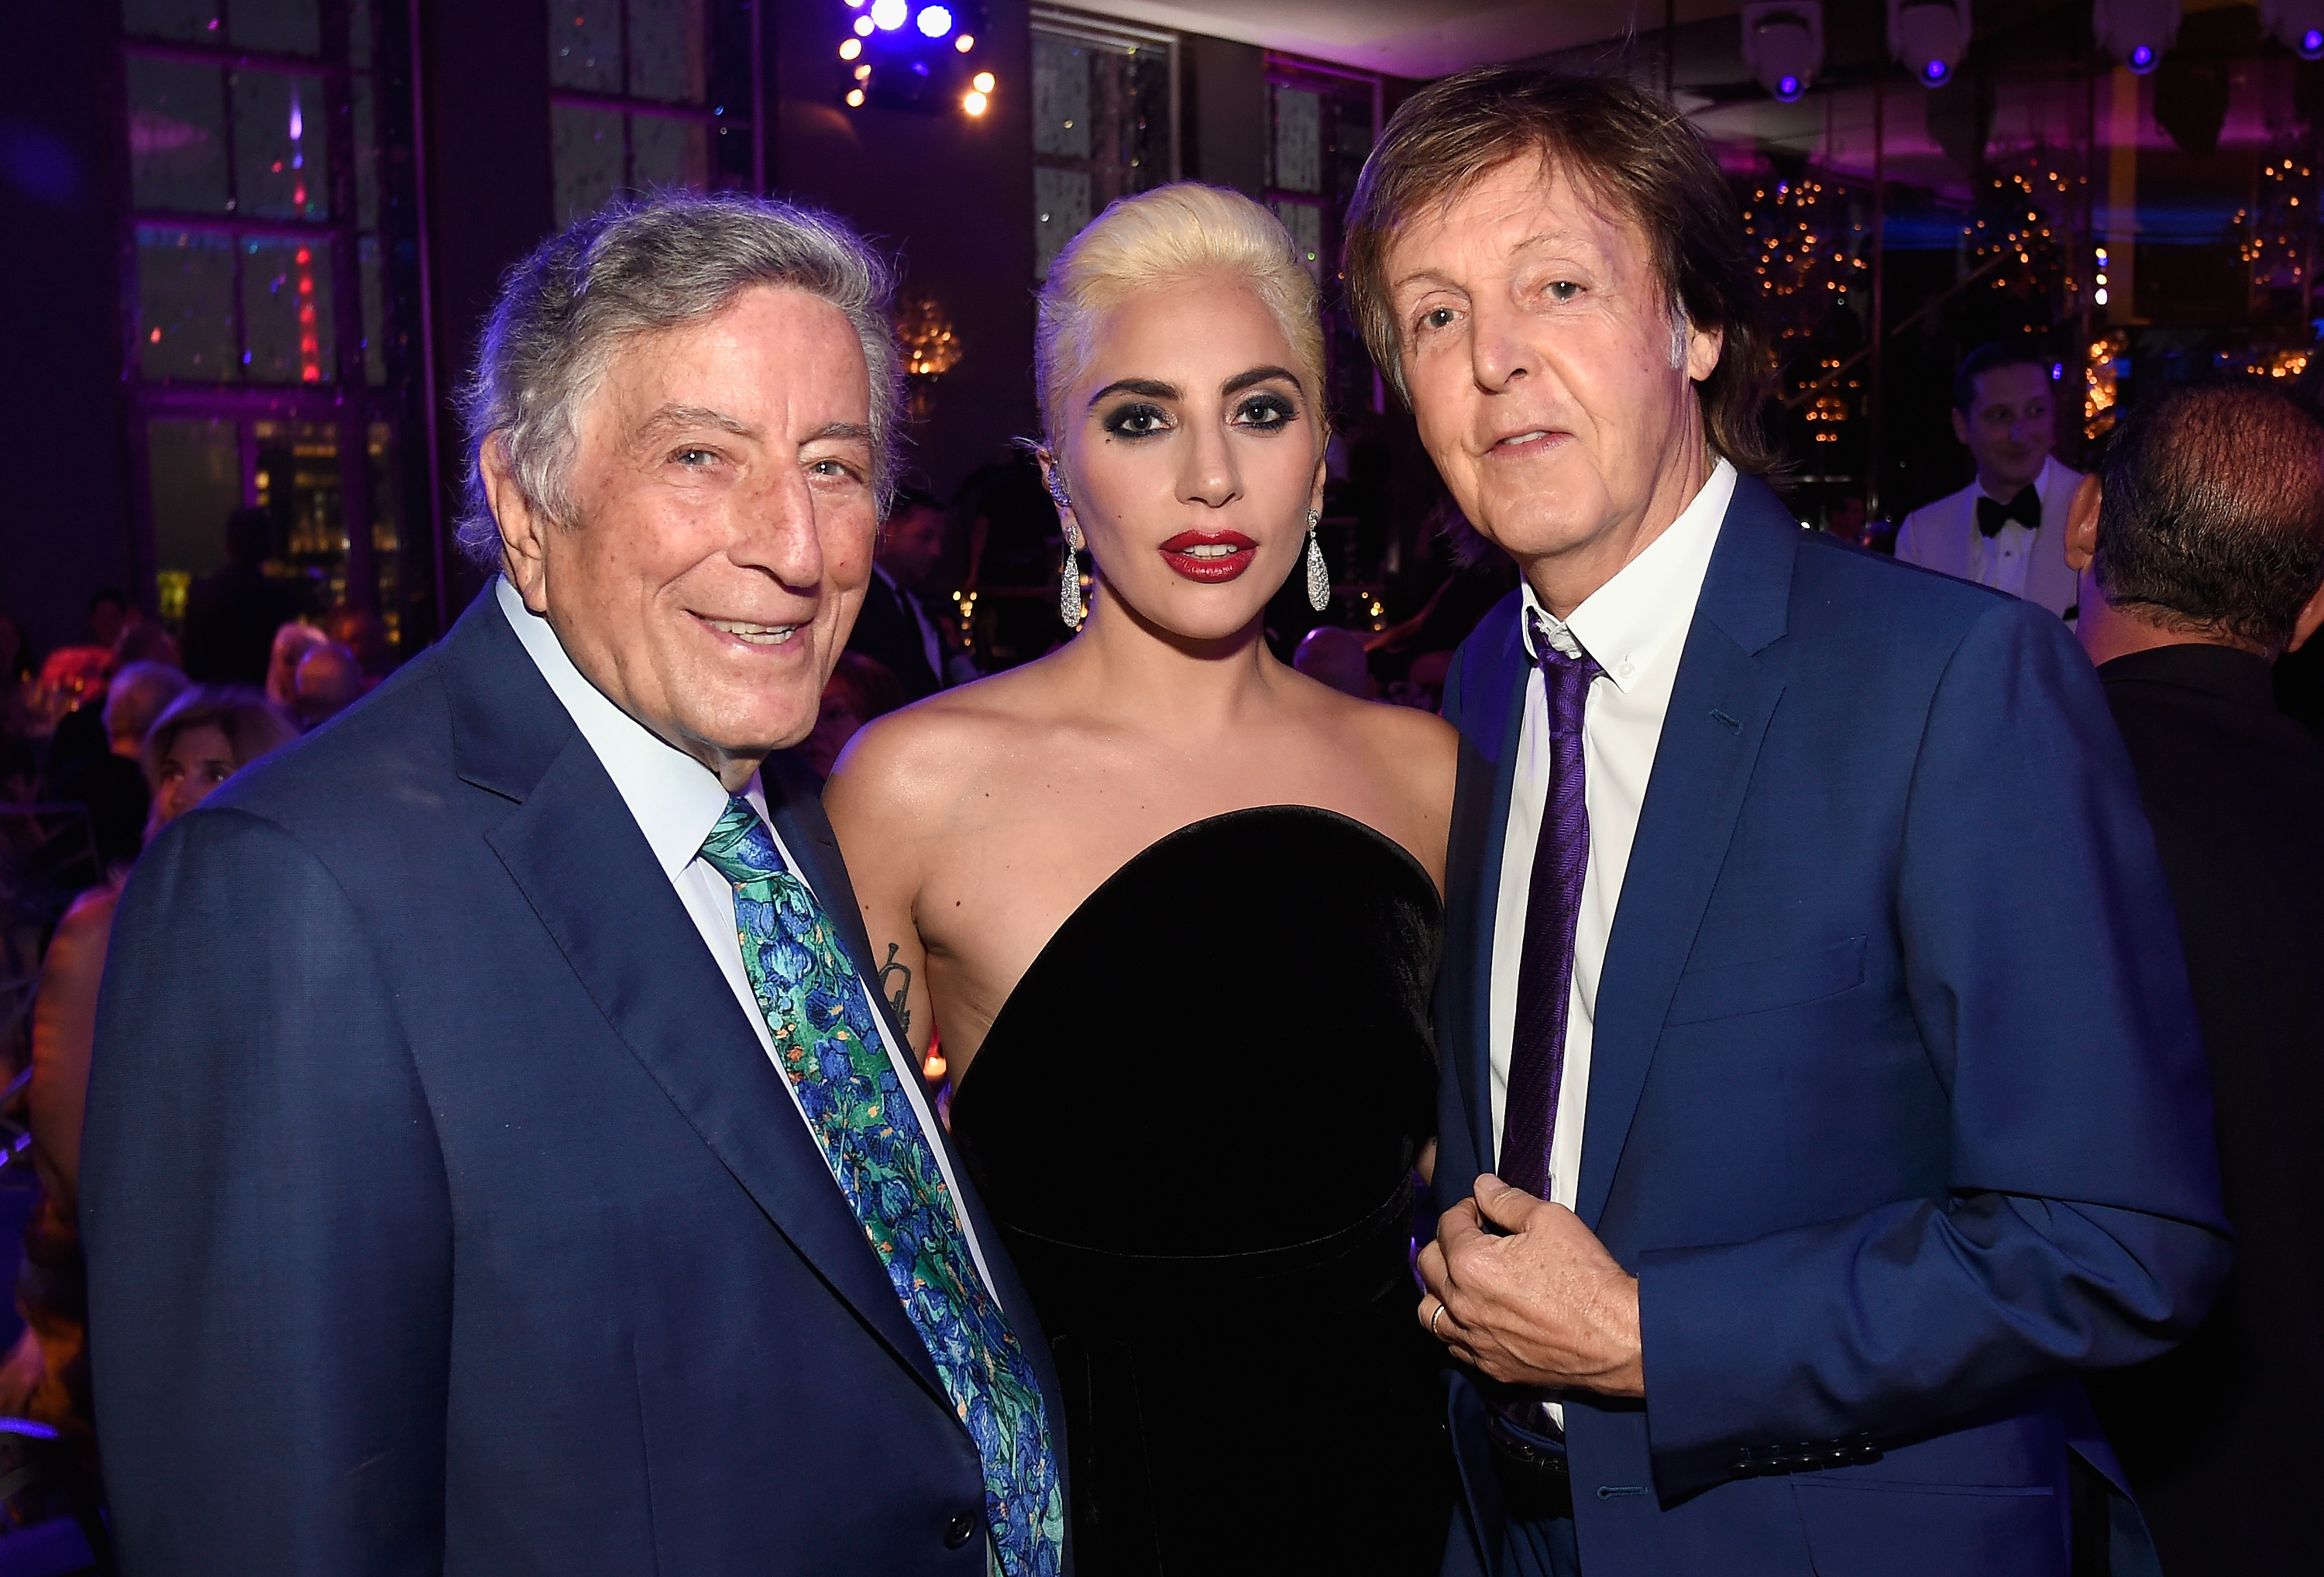 Tony Bennett, Lady Gaga, and Paul McCartney